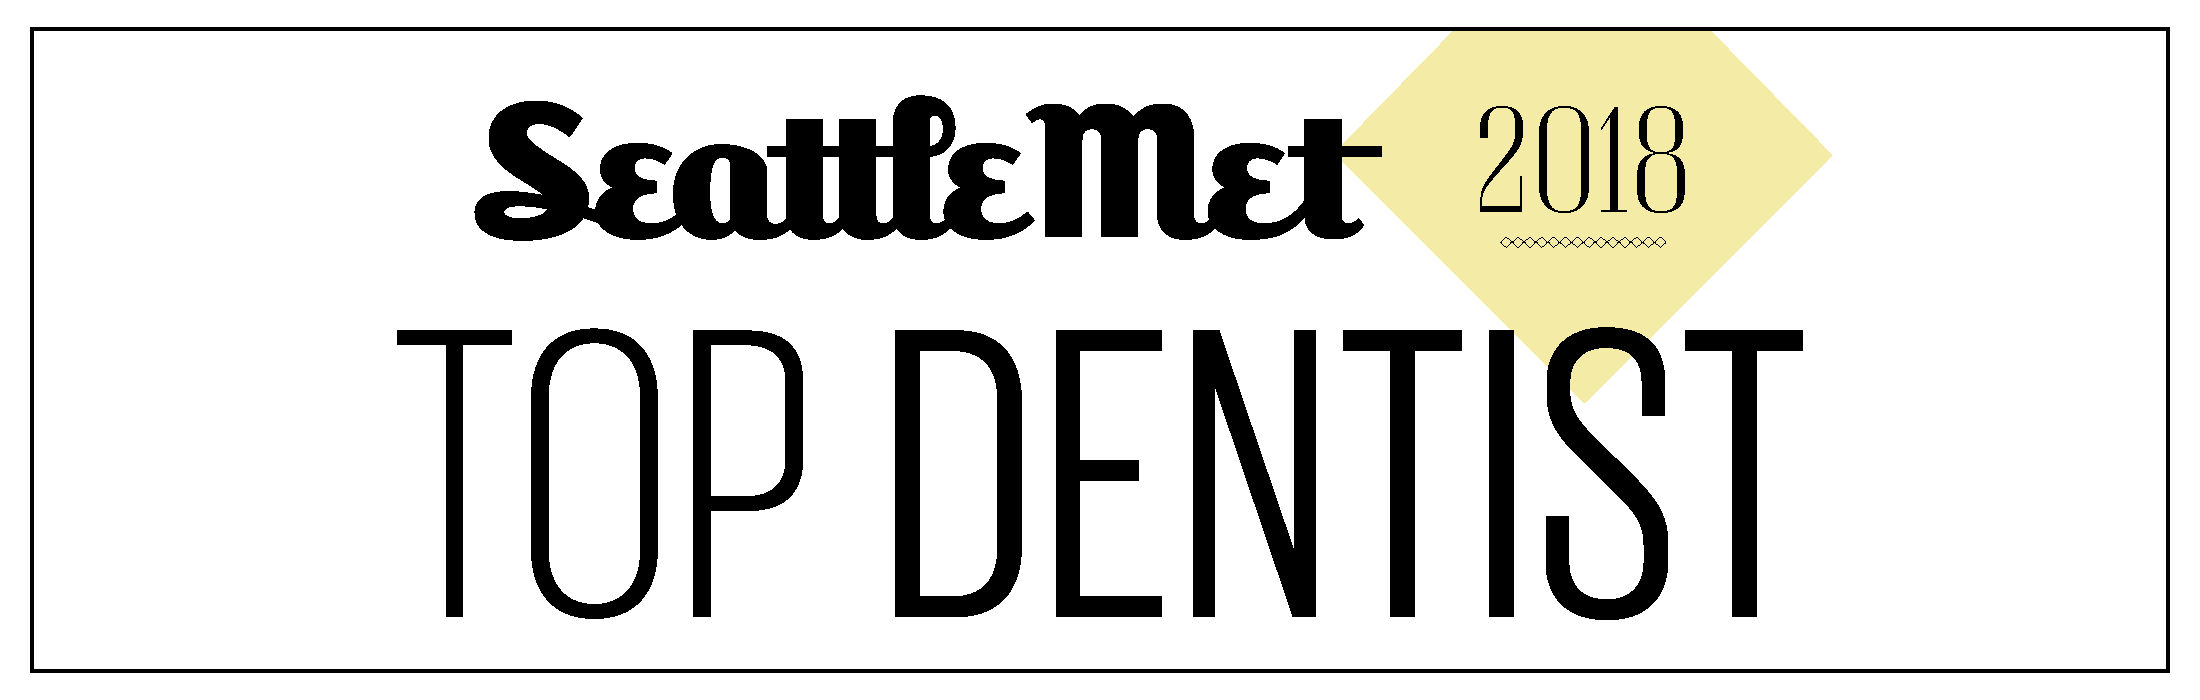 Voted Seattle Met Top Dentist 2018